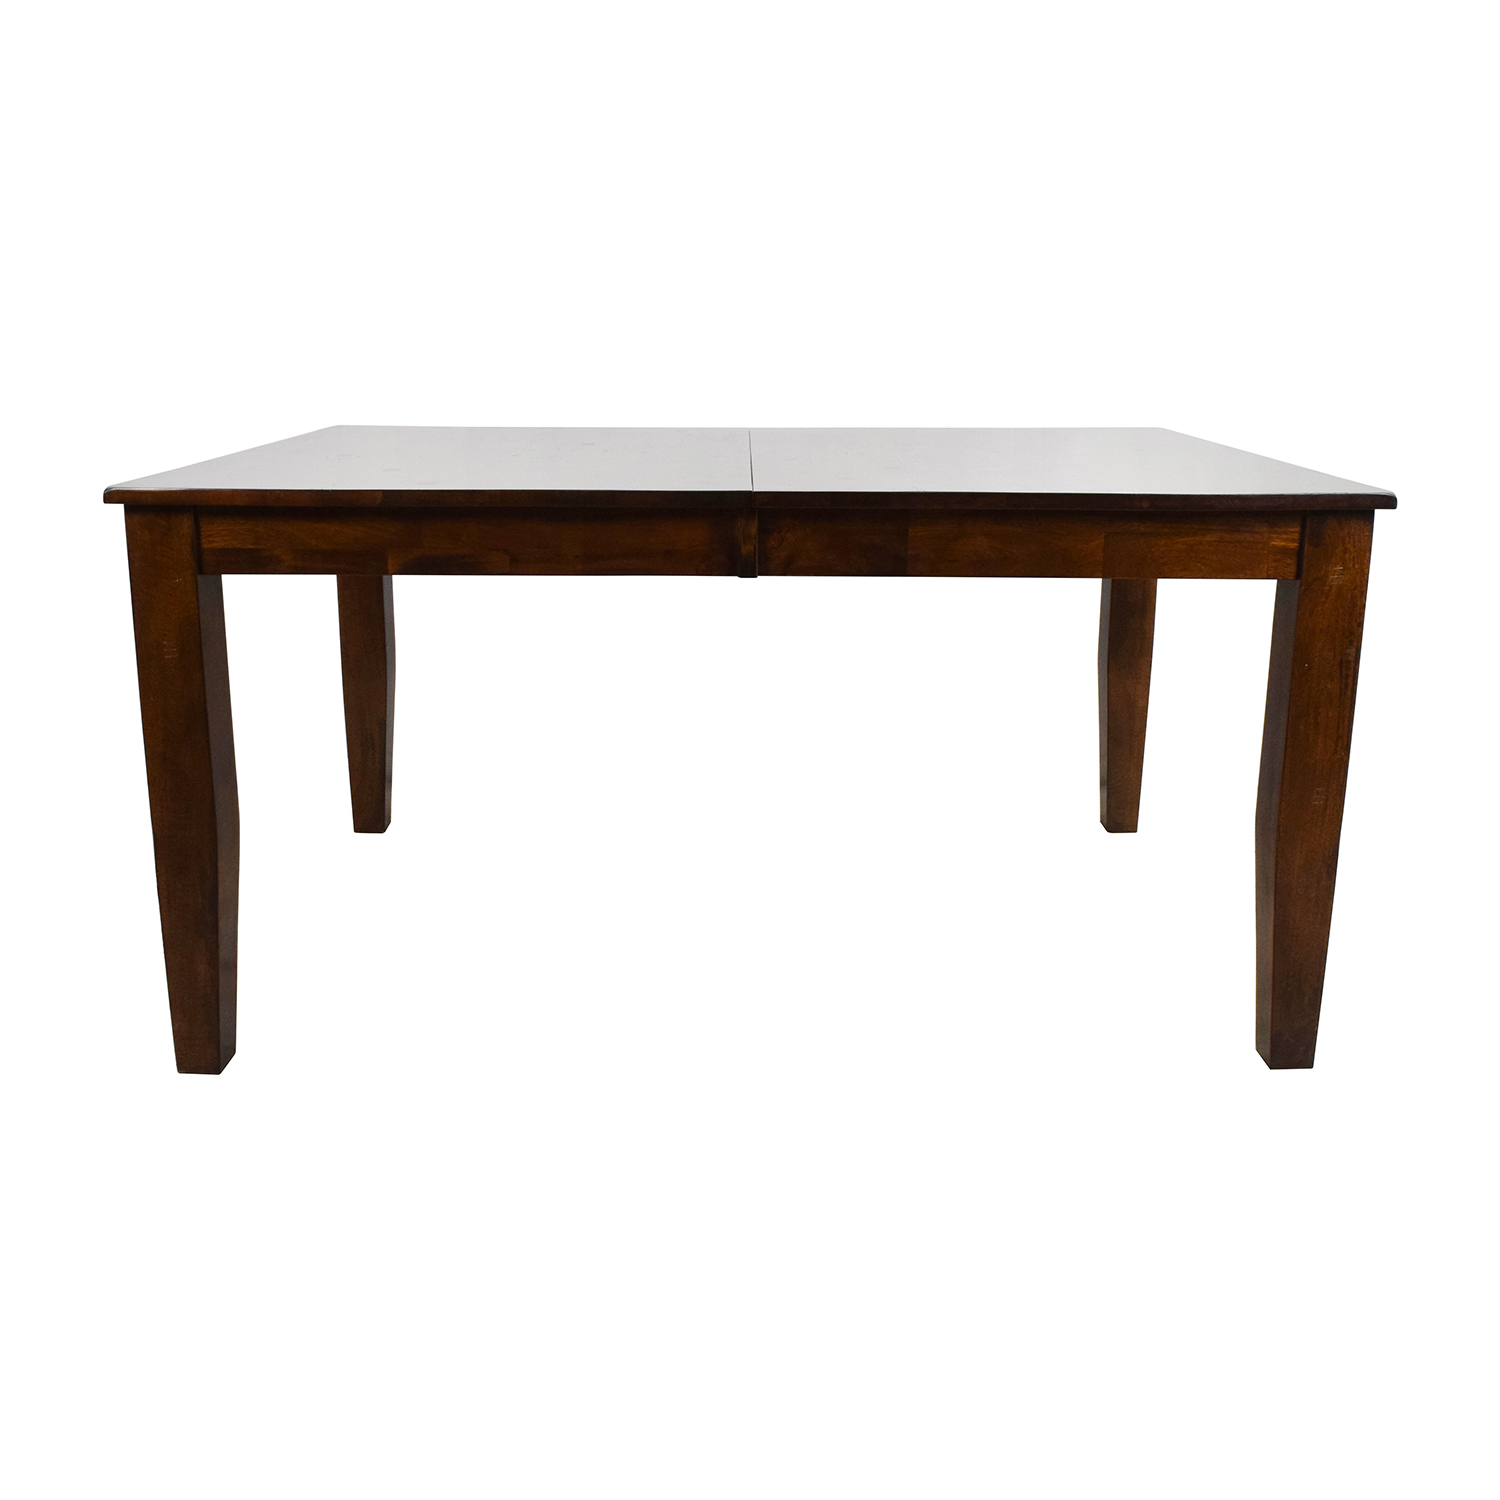 buy Raymour & Flanigan Raymour & Flanigan Kona Dining Table online